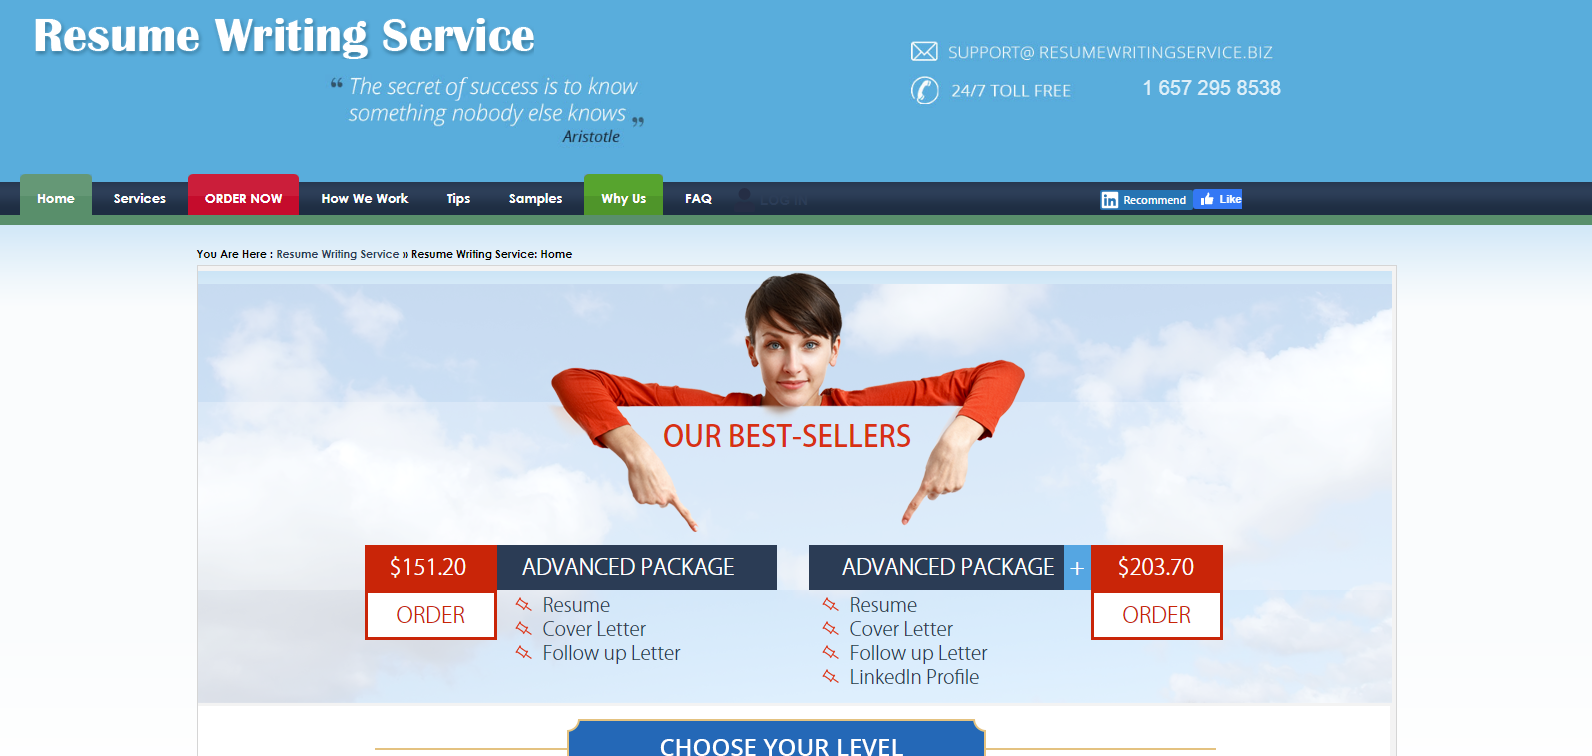 10 Best Military Resume Writing Services in 2021 – Screenshot of Resume Writing Service Homepage